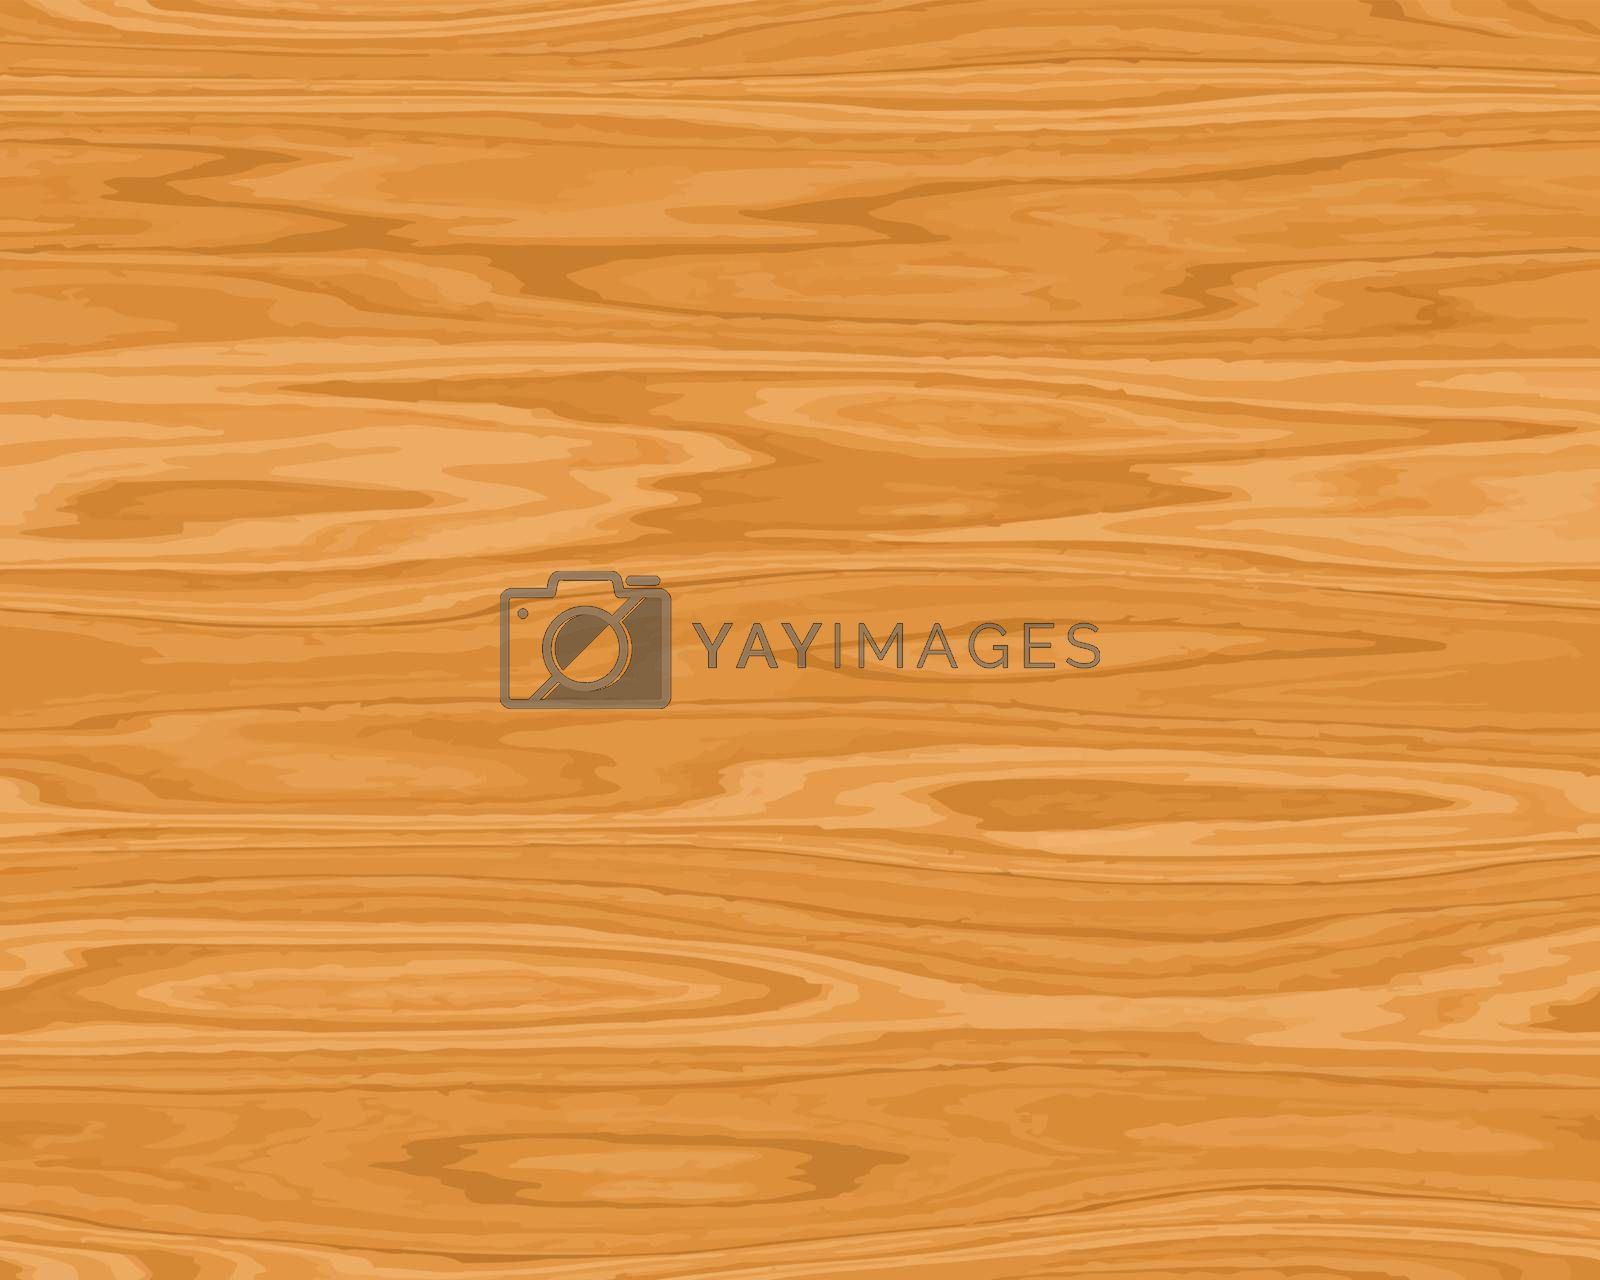 a large background texture of grainy and knotted pine wood